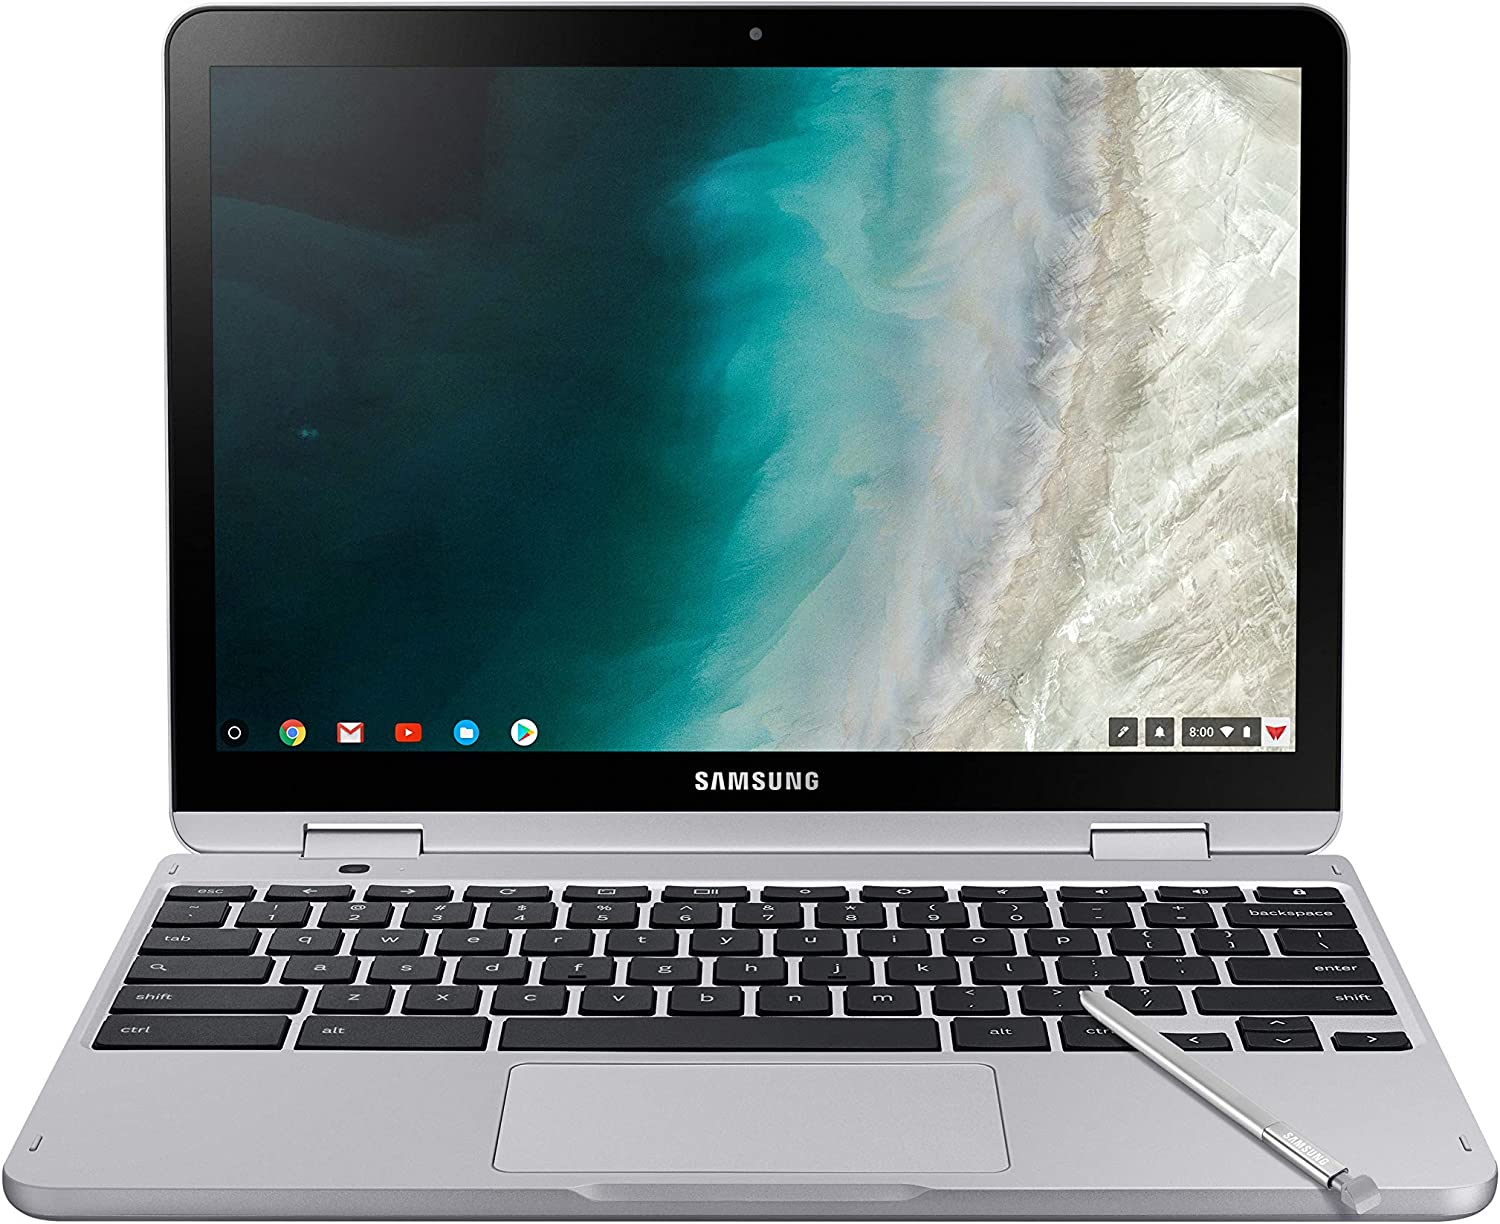 "Samsung Chromebook Plus V2, 2-in-1, 4GB RAM, 32GB eMMC, 13MP Camera, Chrome OS, 12.2"", 16:10 Aspect Ratio, Light Titan (XE520QAB-K01US)"